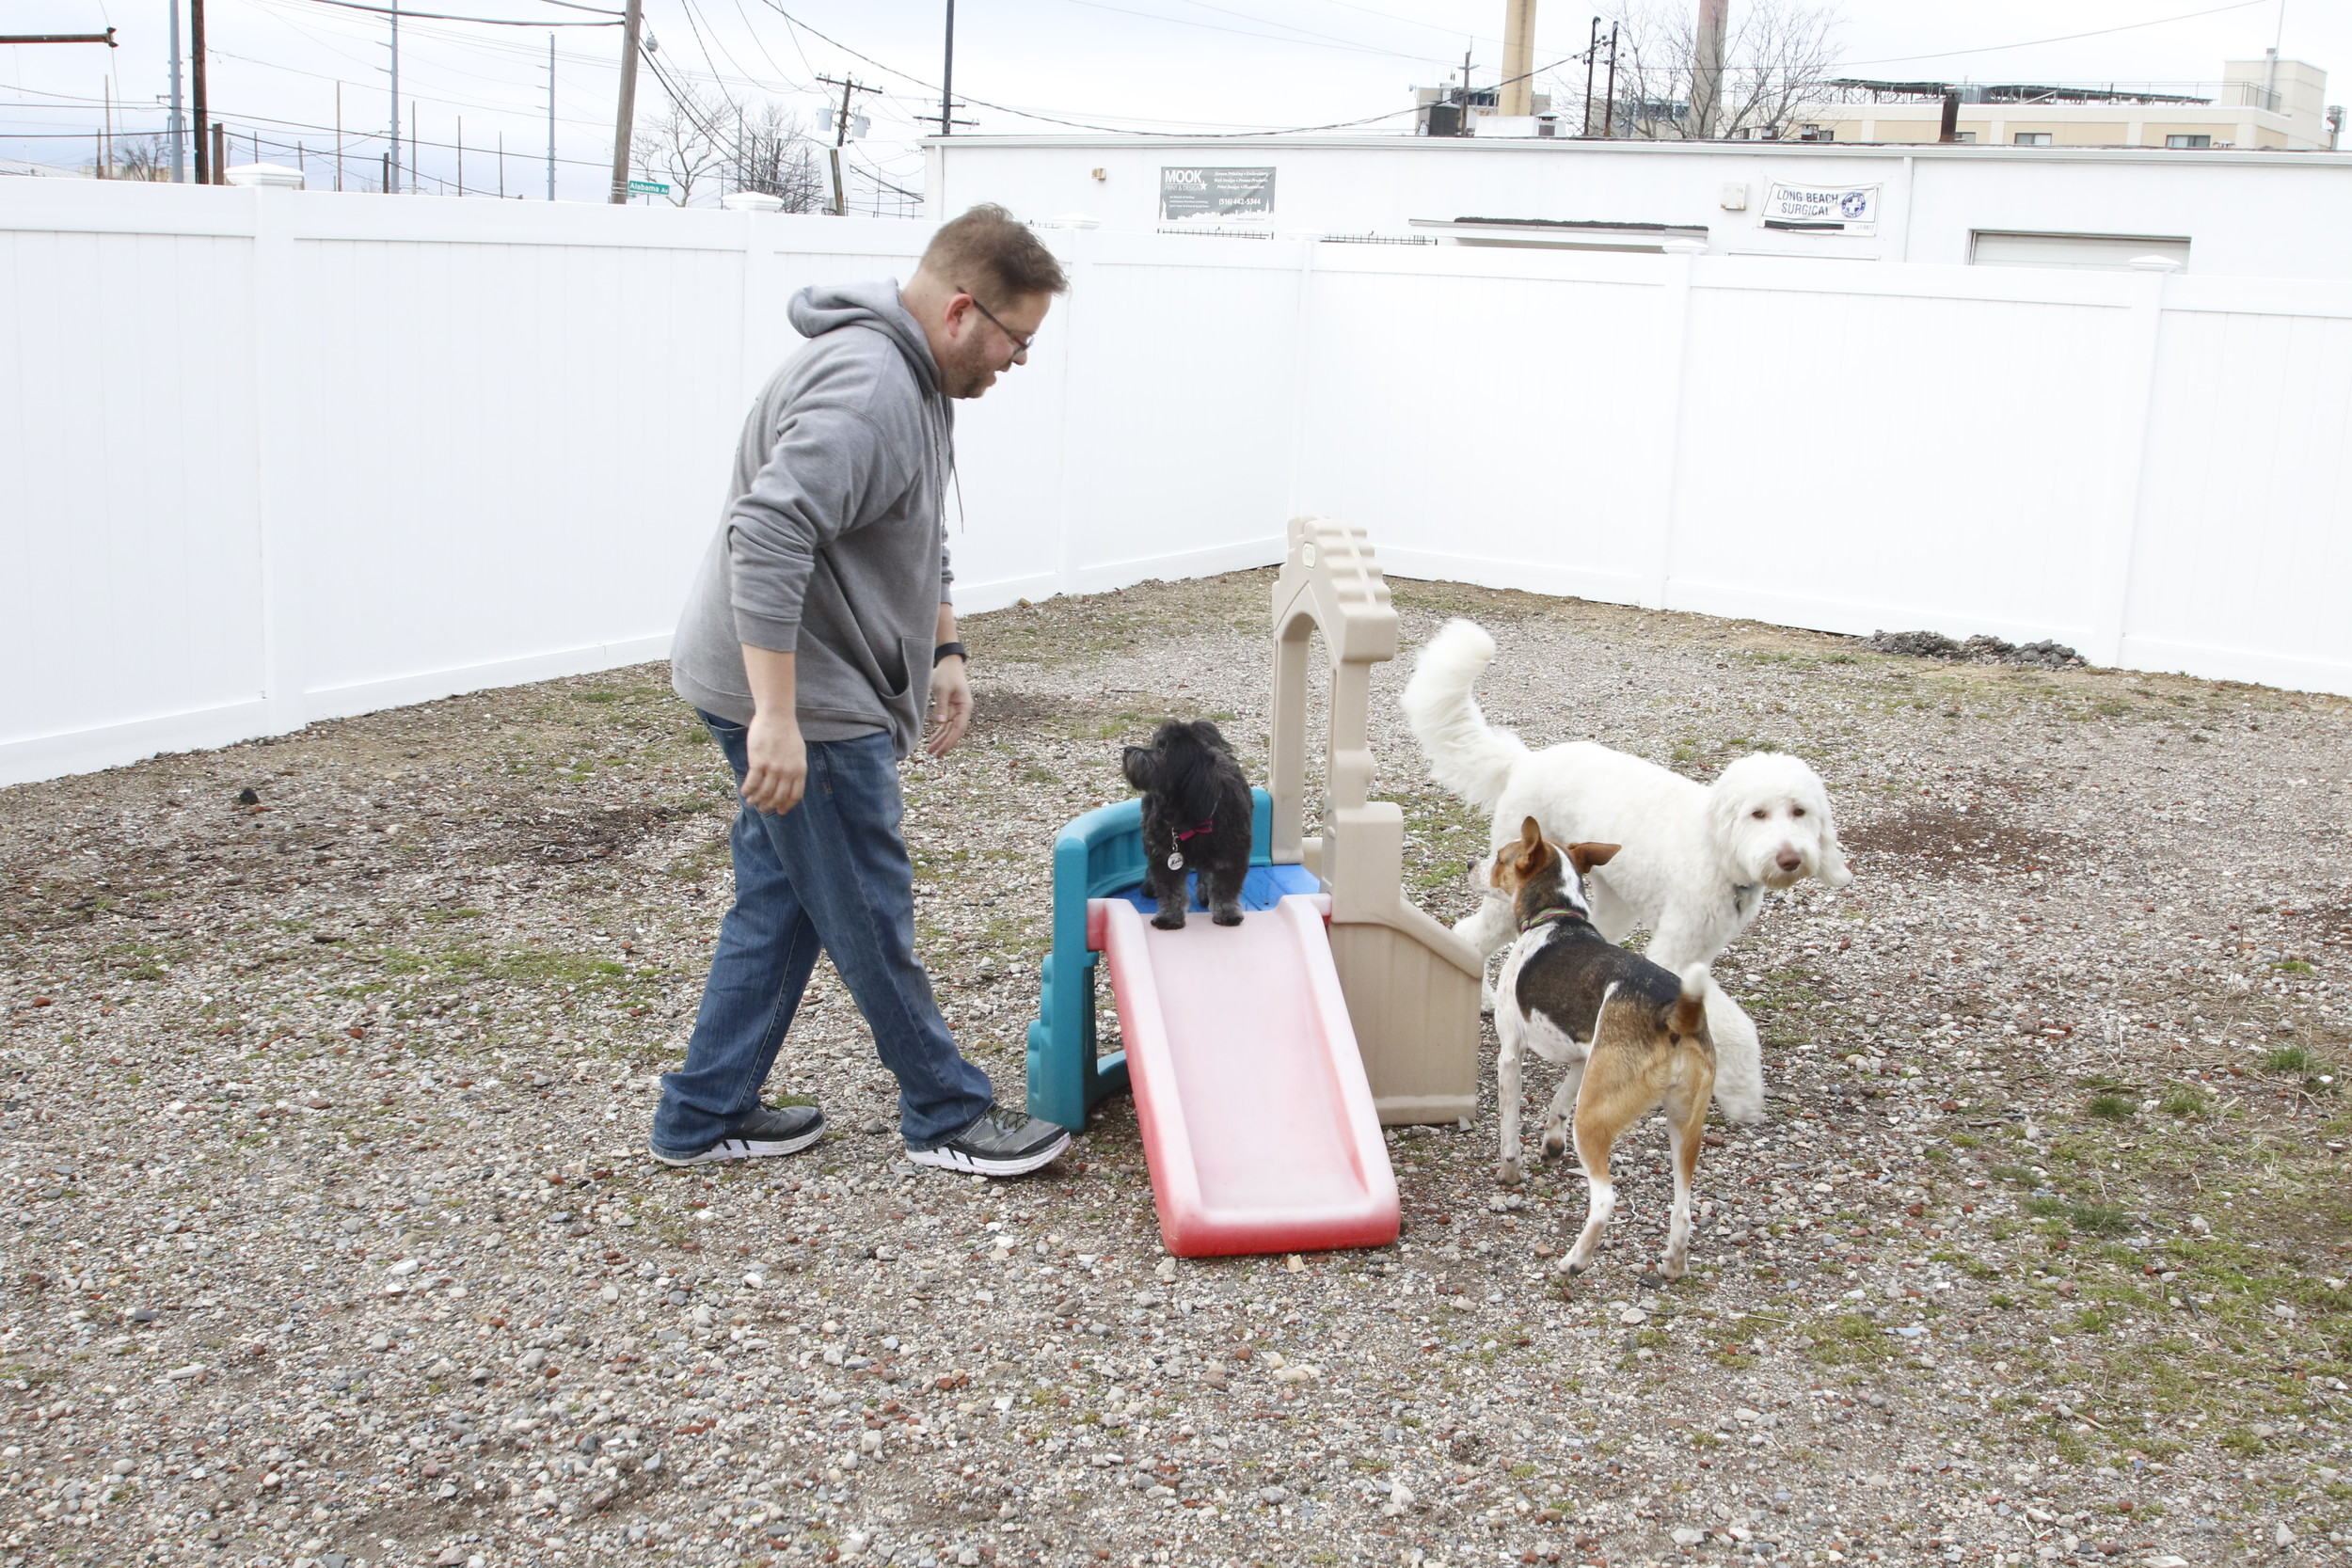 Judson played with some of the pets in Island Bark's side yard.